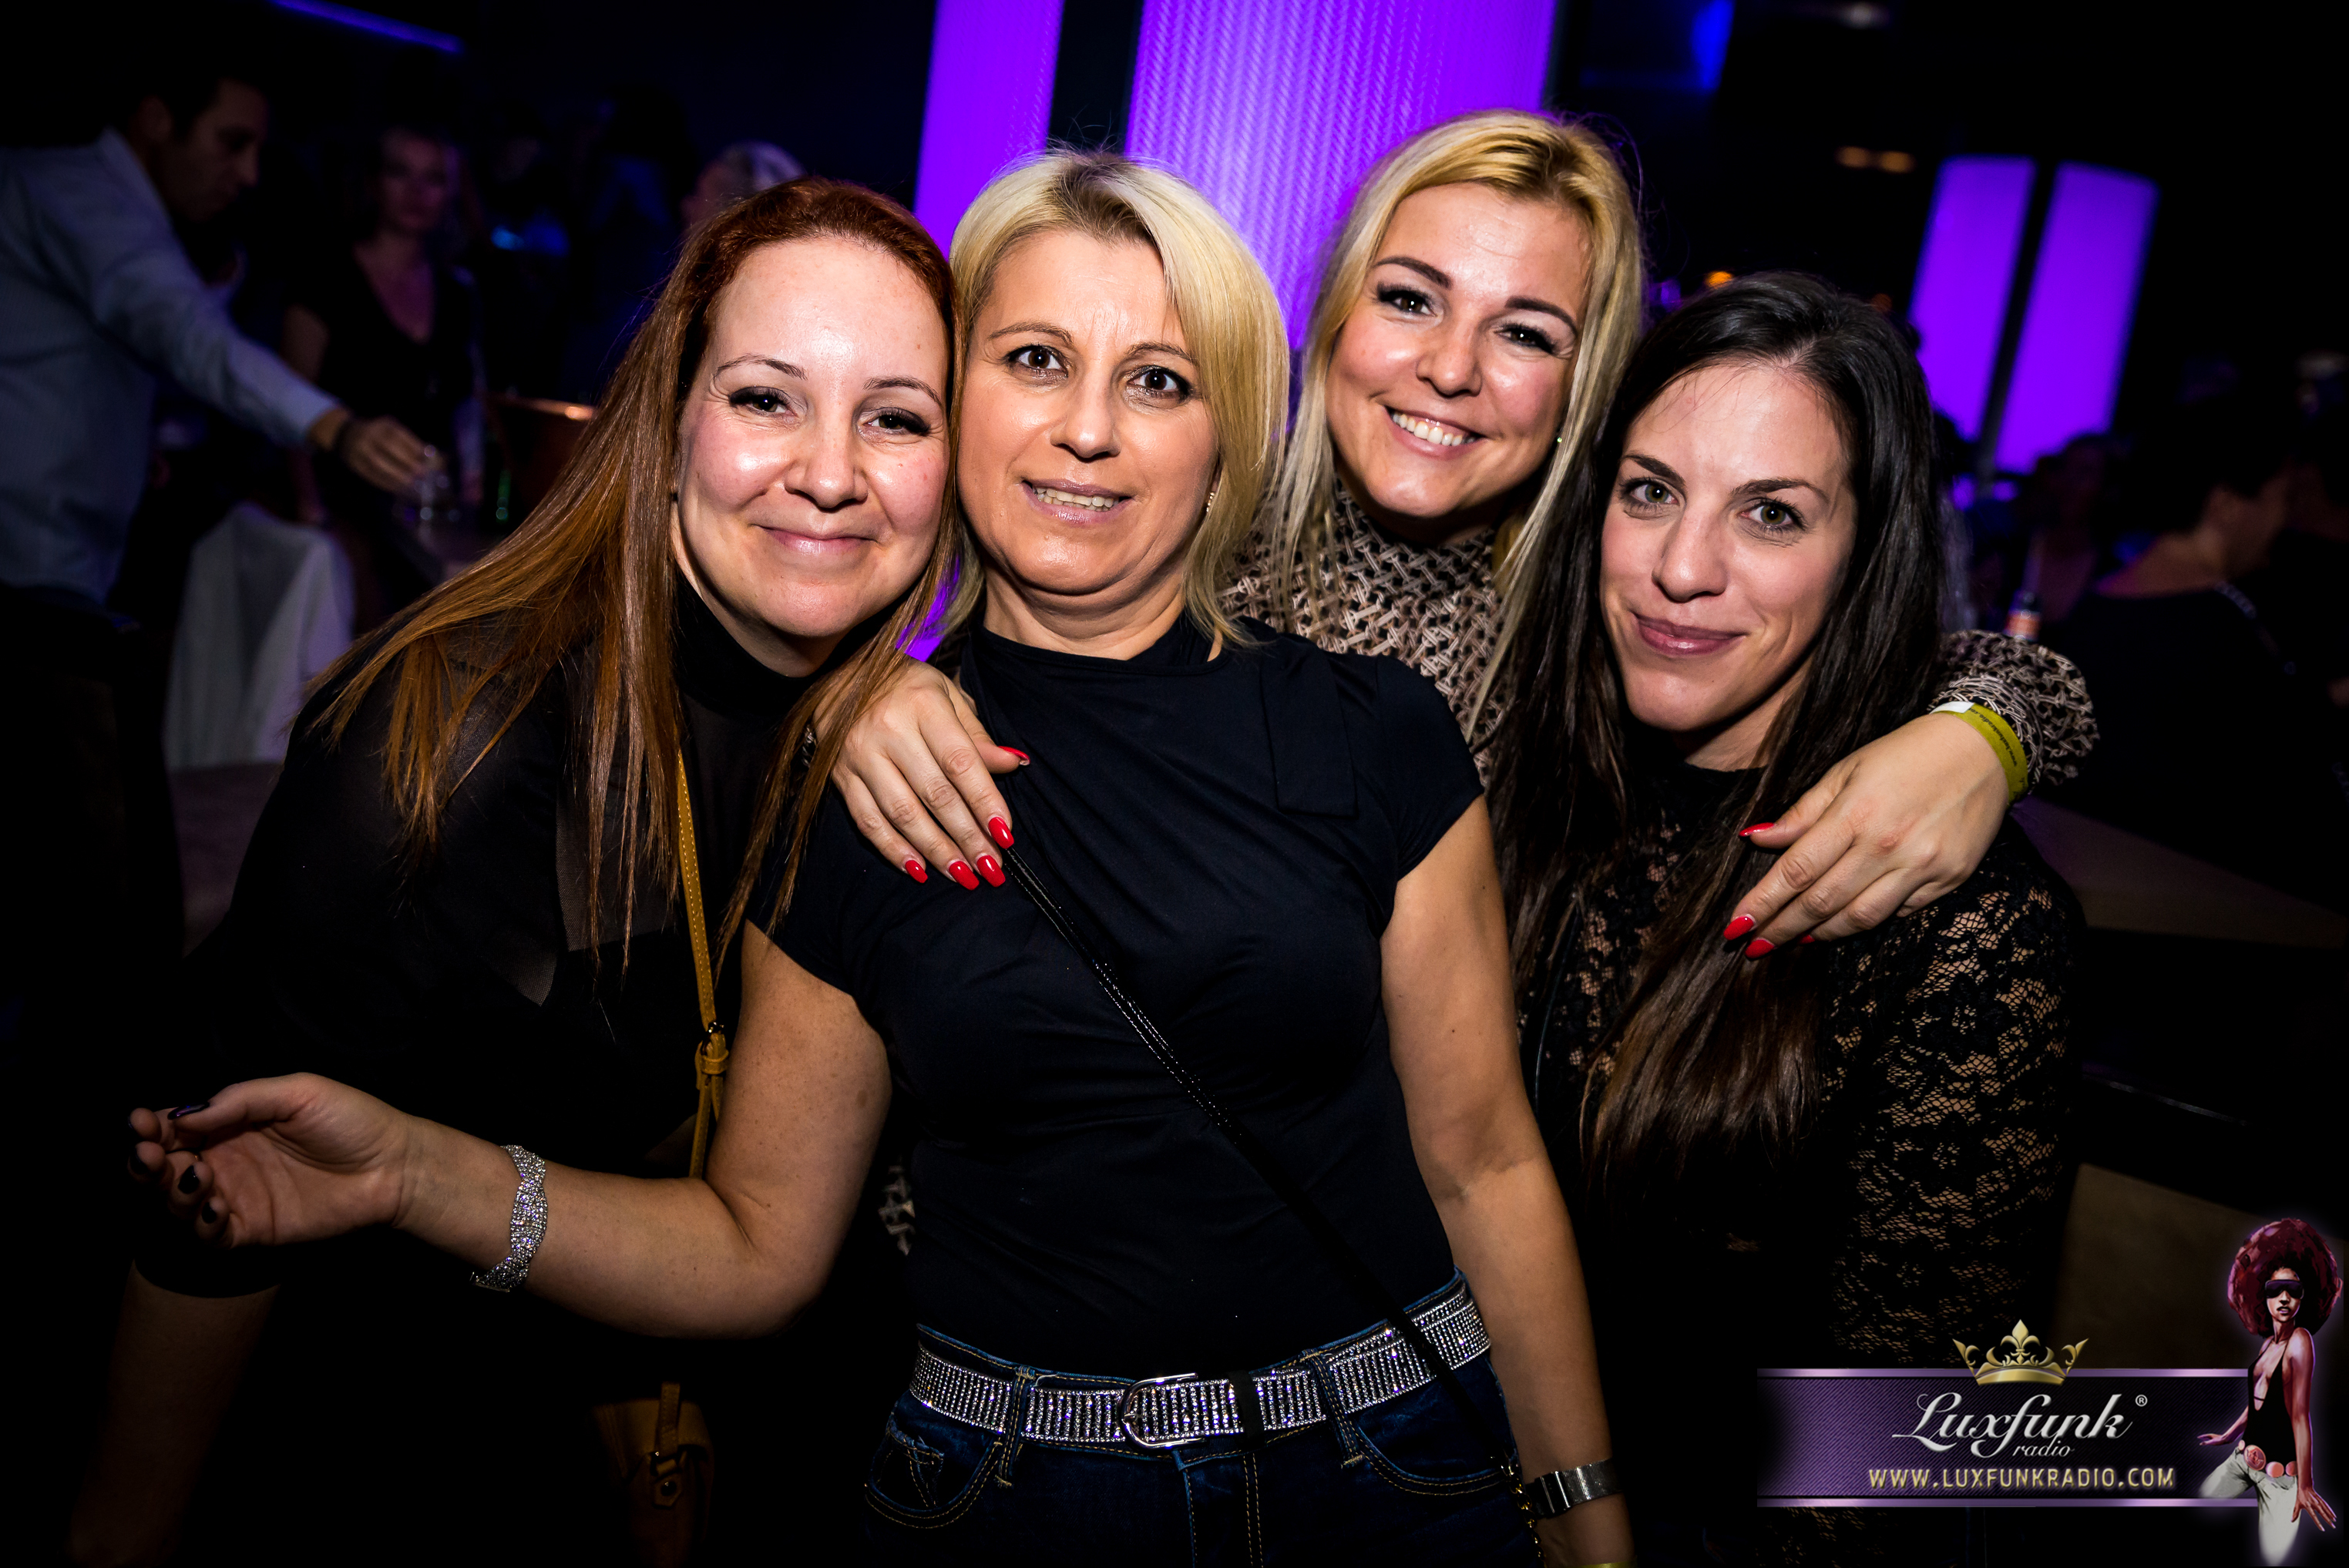 luxfunk-radio-funky-party-20191108-lock-budapest-1156